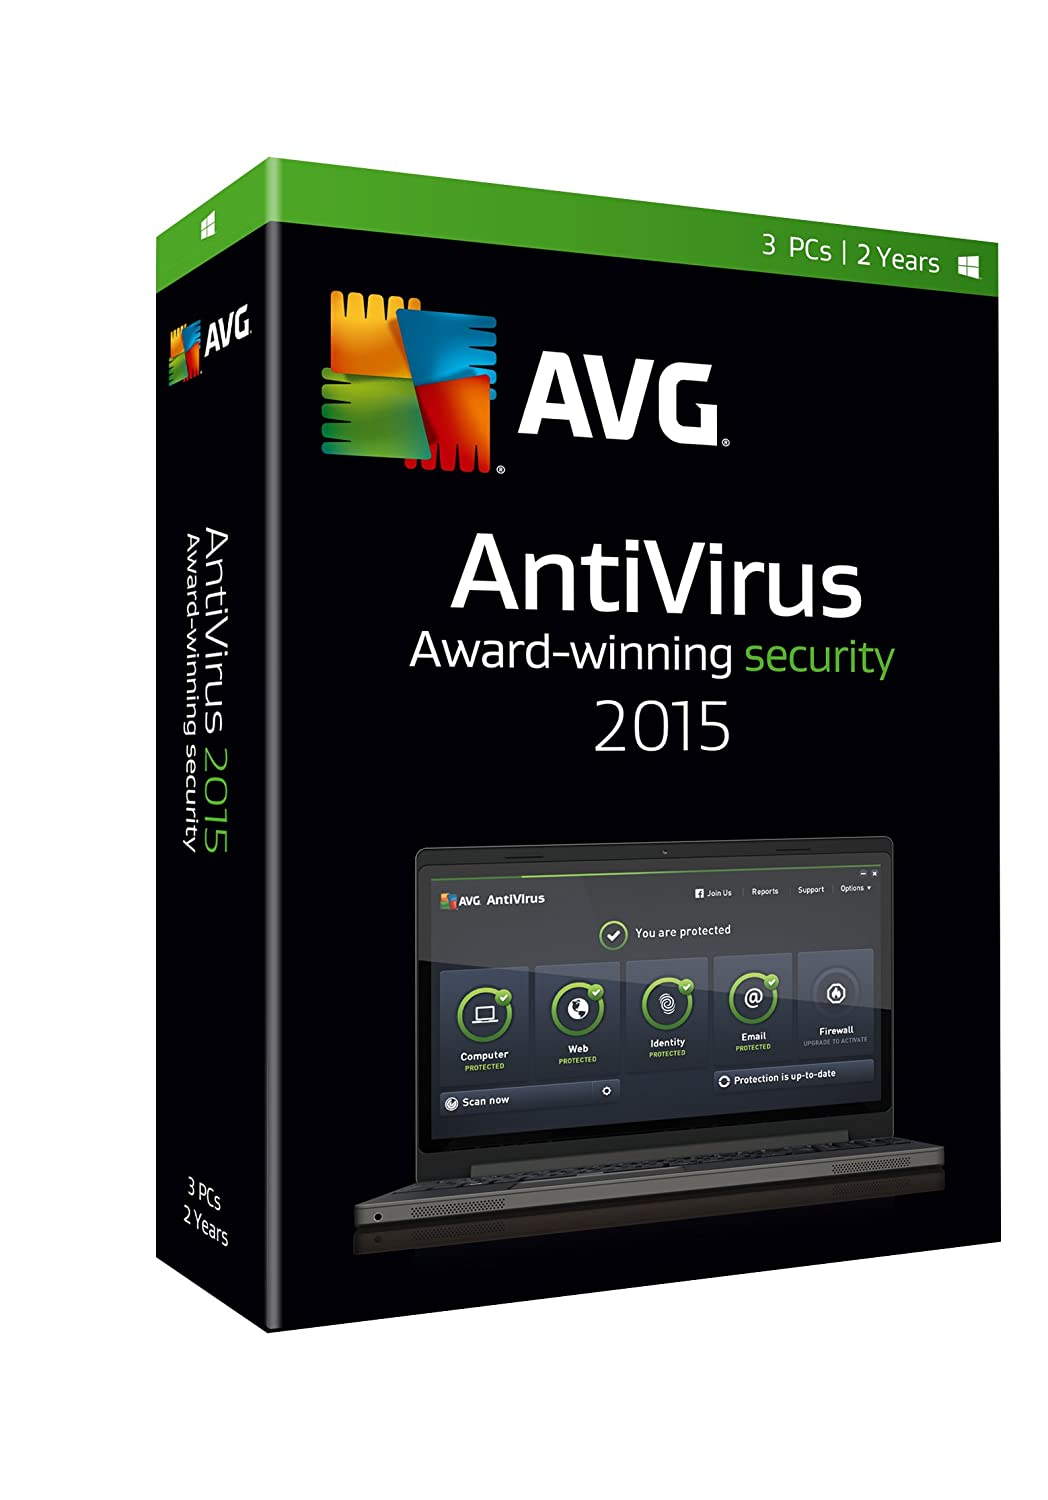 AVG Internet Security / Anti-Virus 2015 Build 5941 Offline Installer With Keys Till 2018 Full Version Free Download